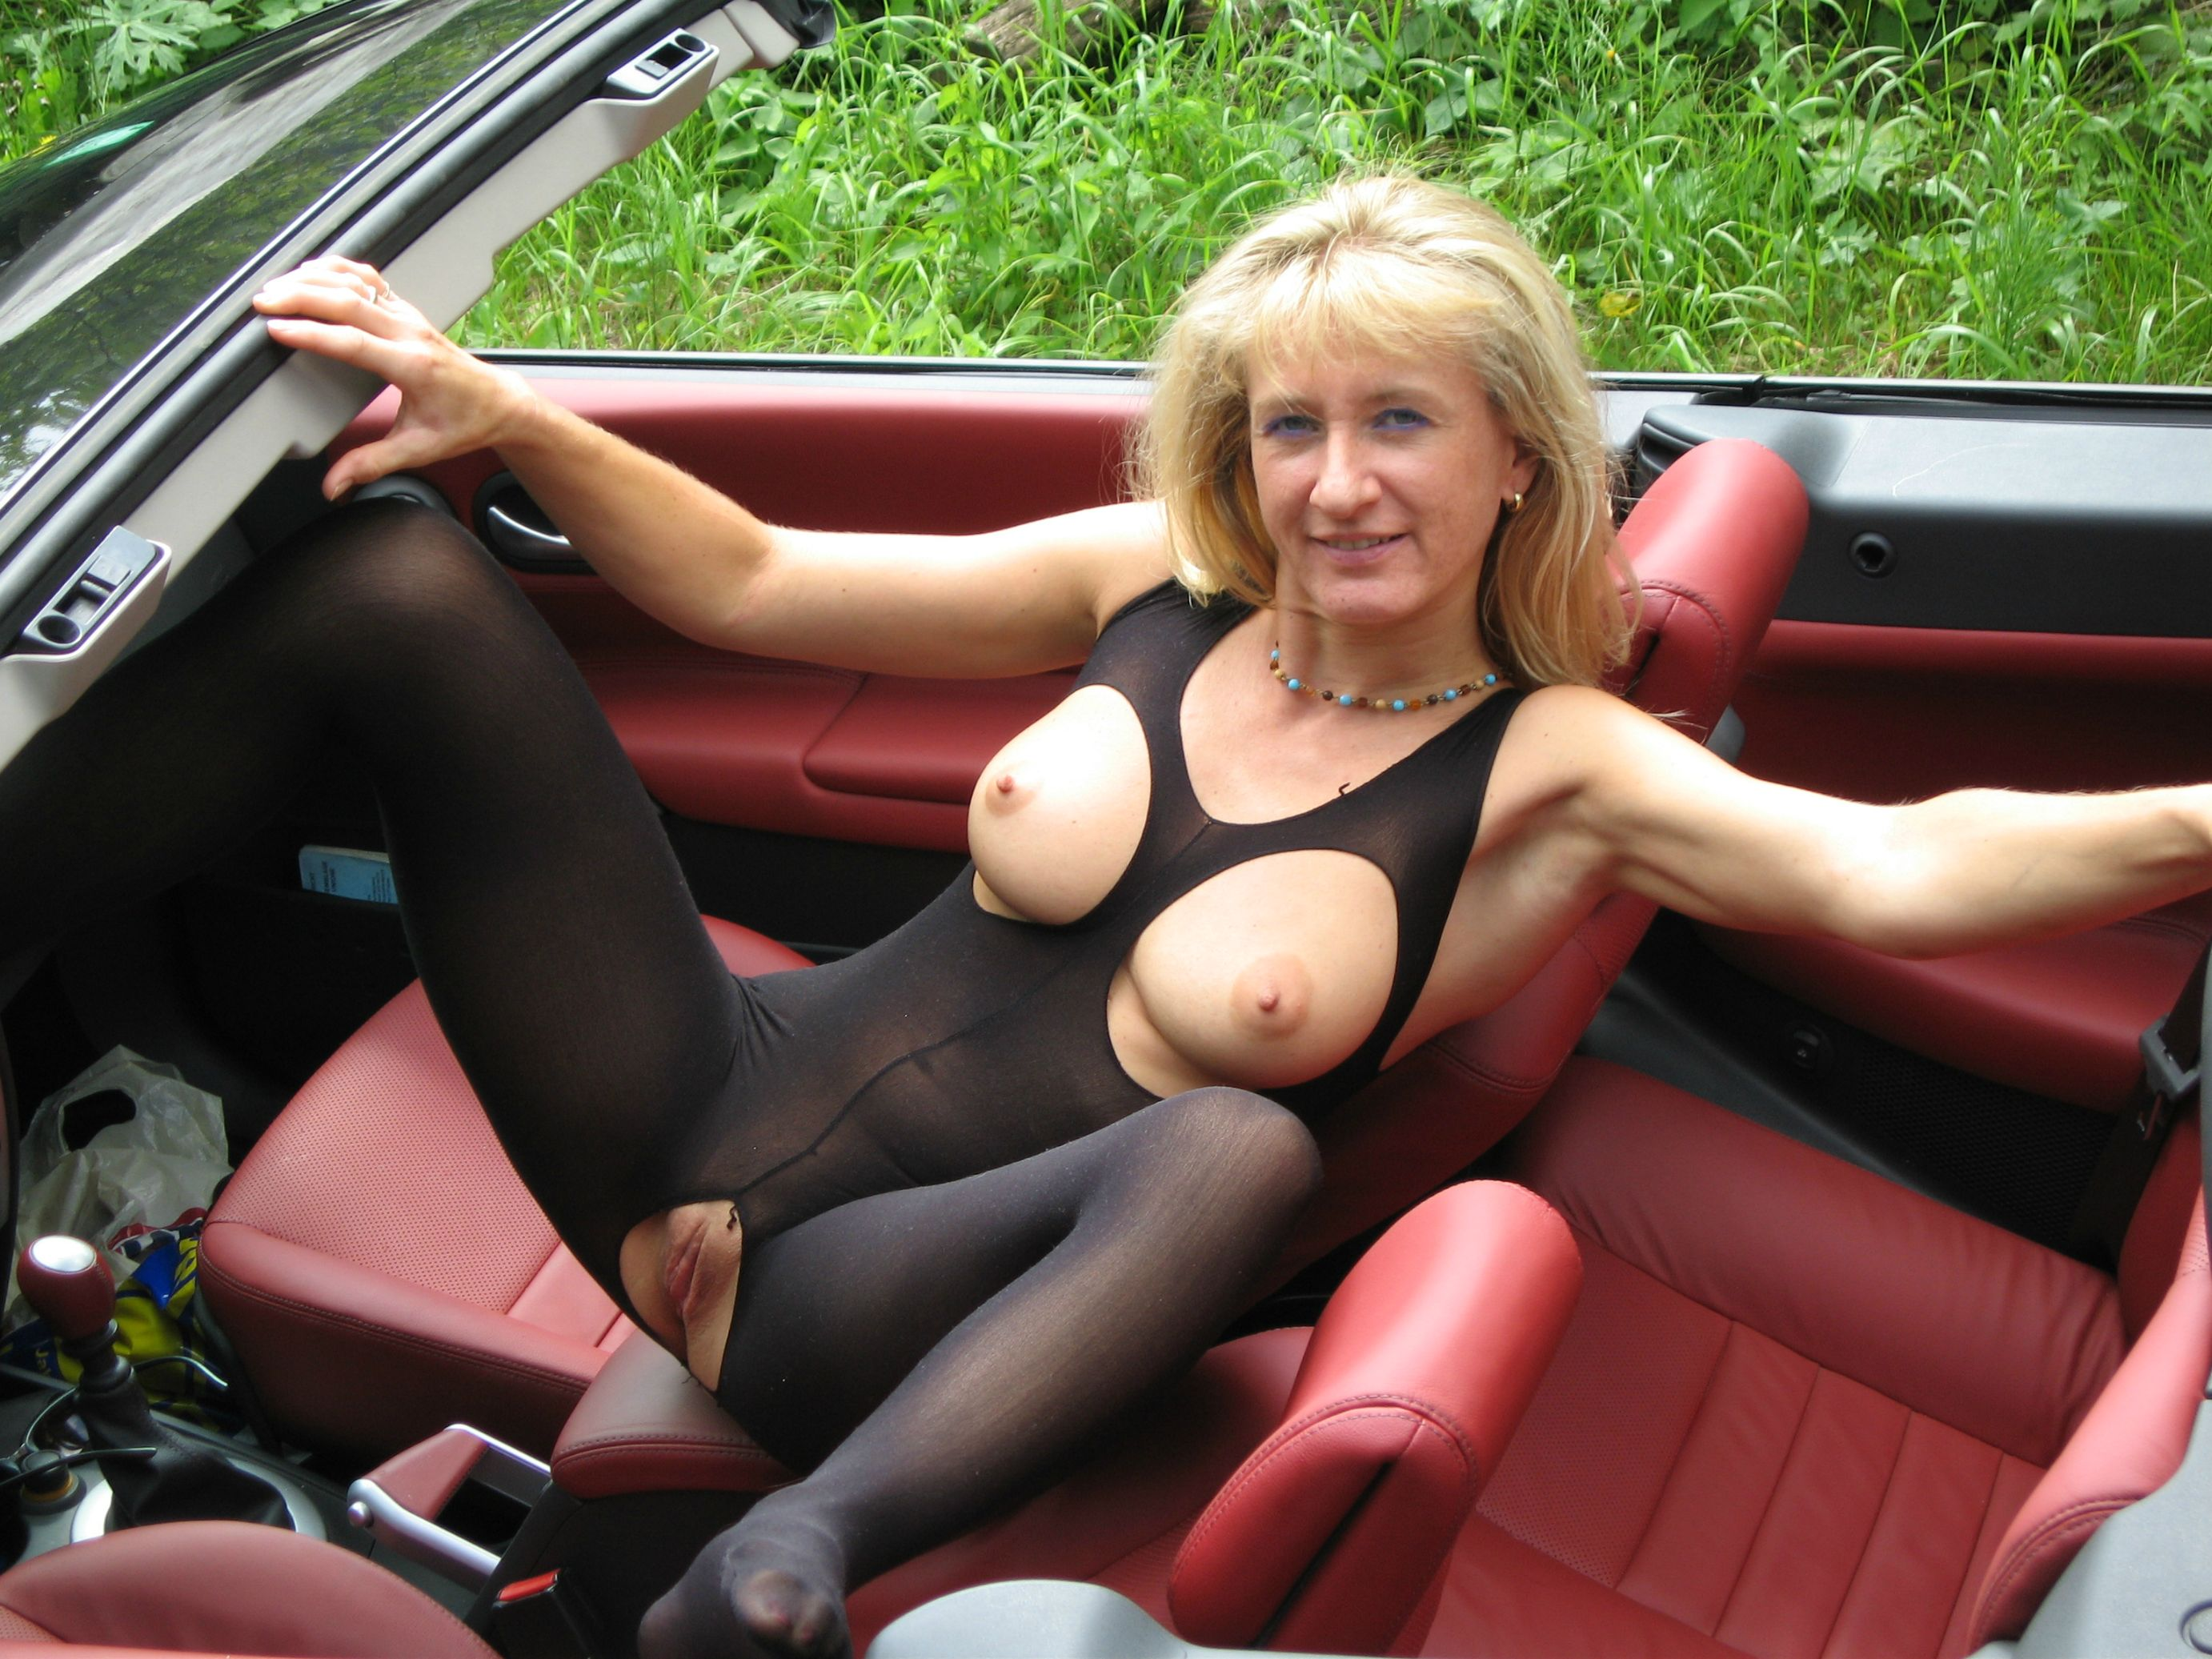 Milf in Bodystockings Porn Photo - EPORNER